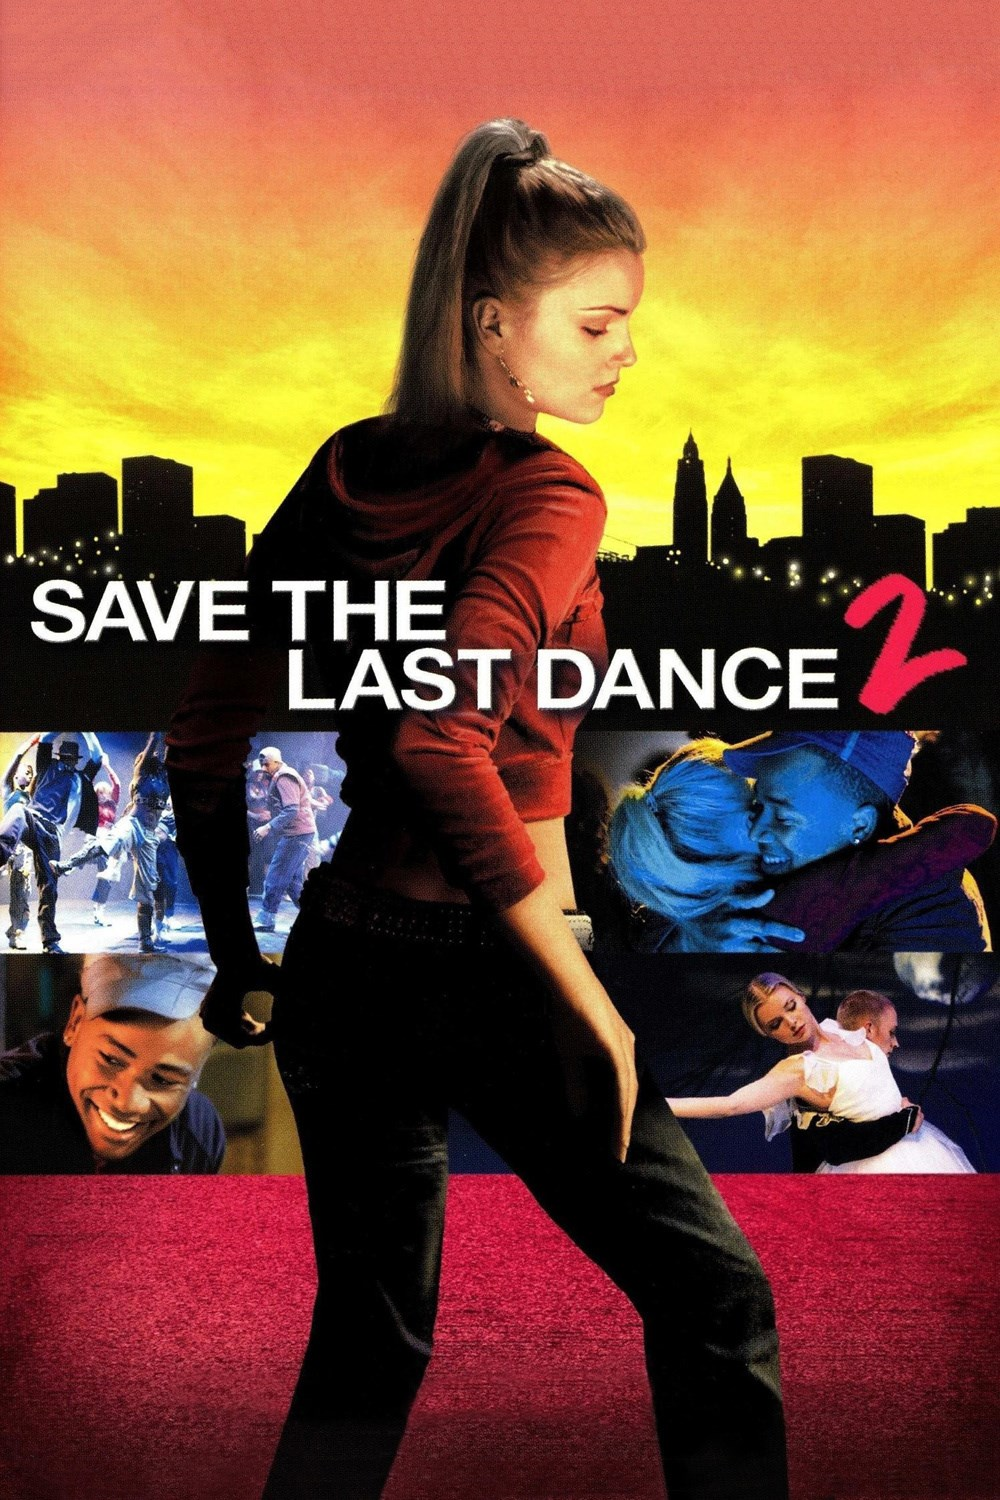 Save the last